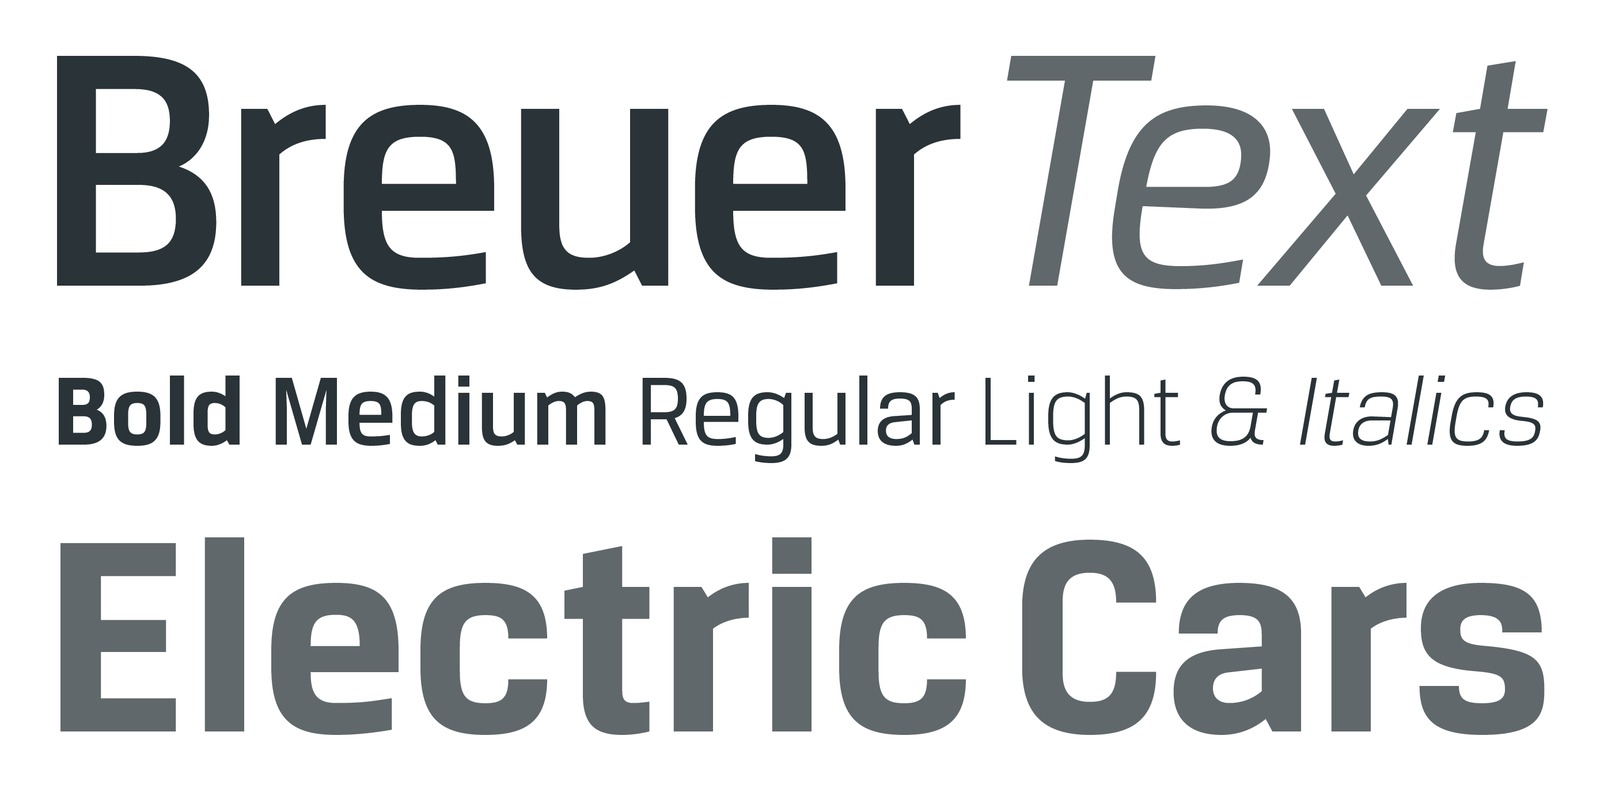 Breuer Text by Silas Dilworth - TypeTrust